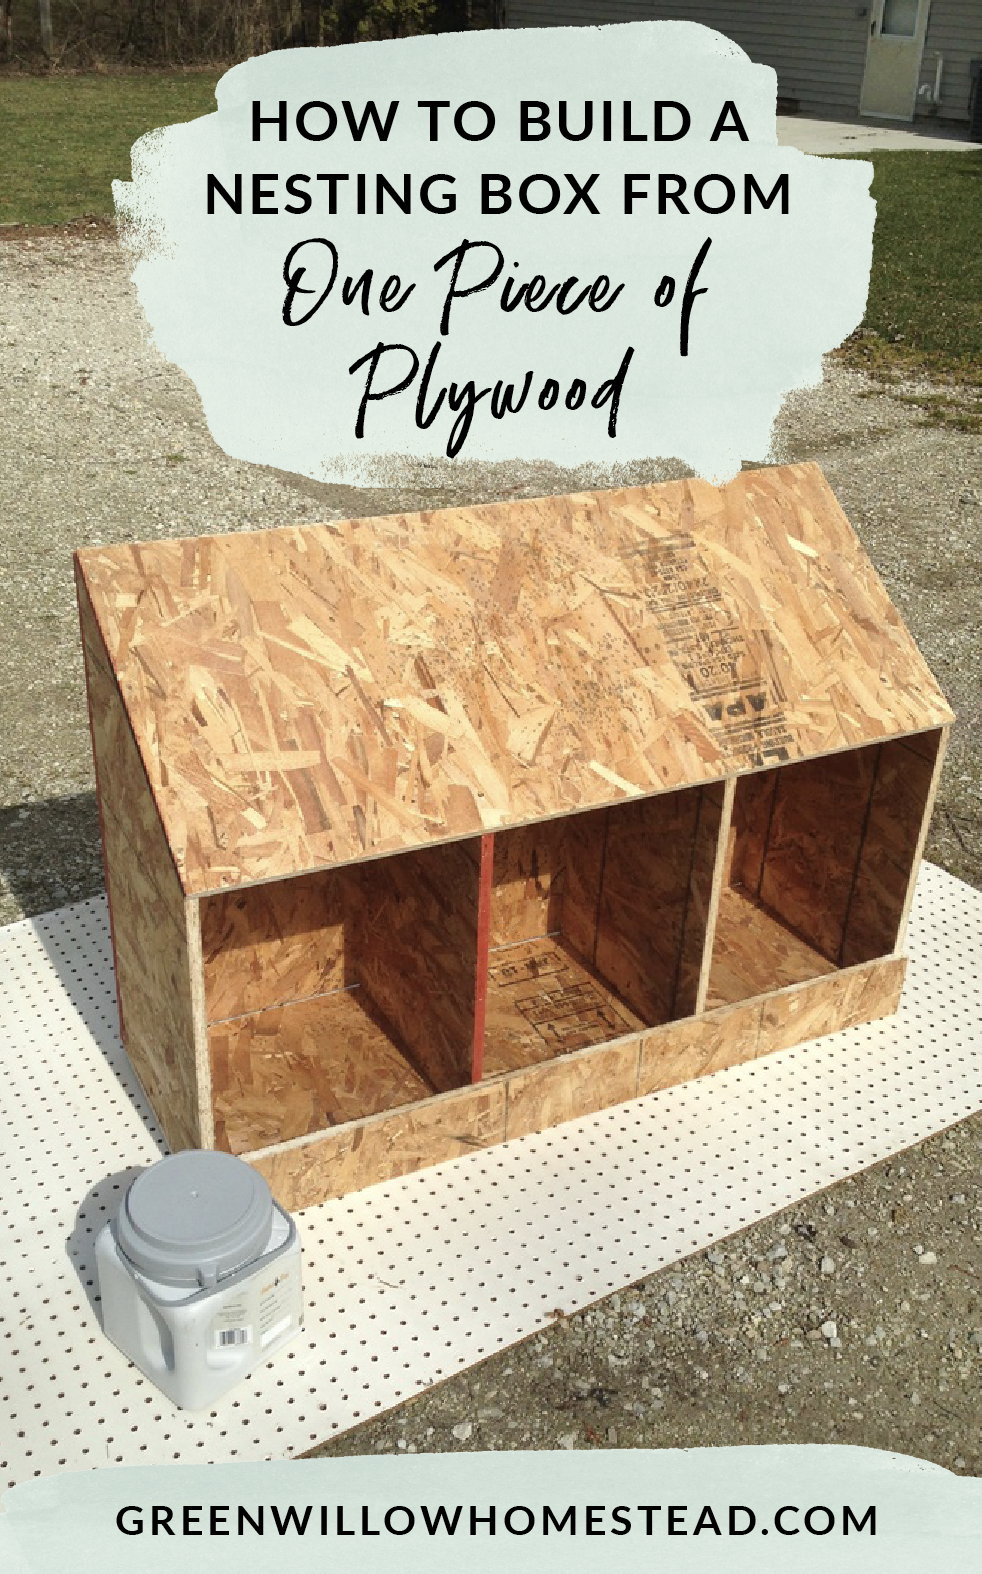 How to build a nesting box from one piece of plywood for your backyard chickens